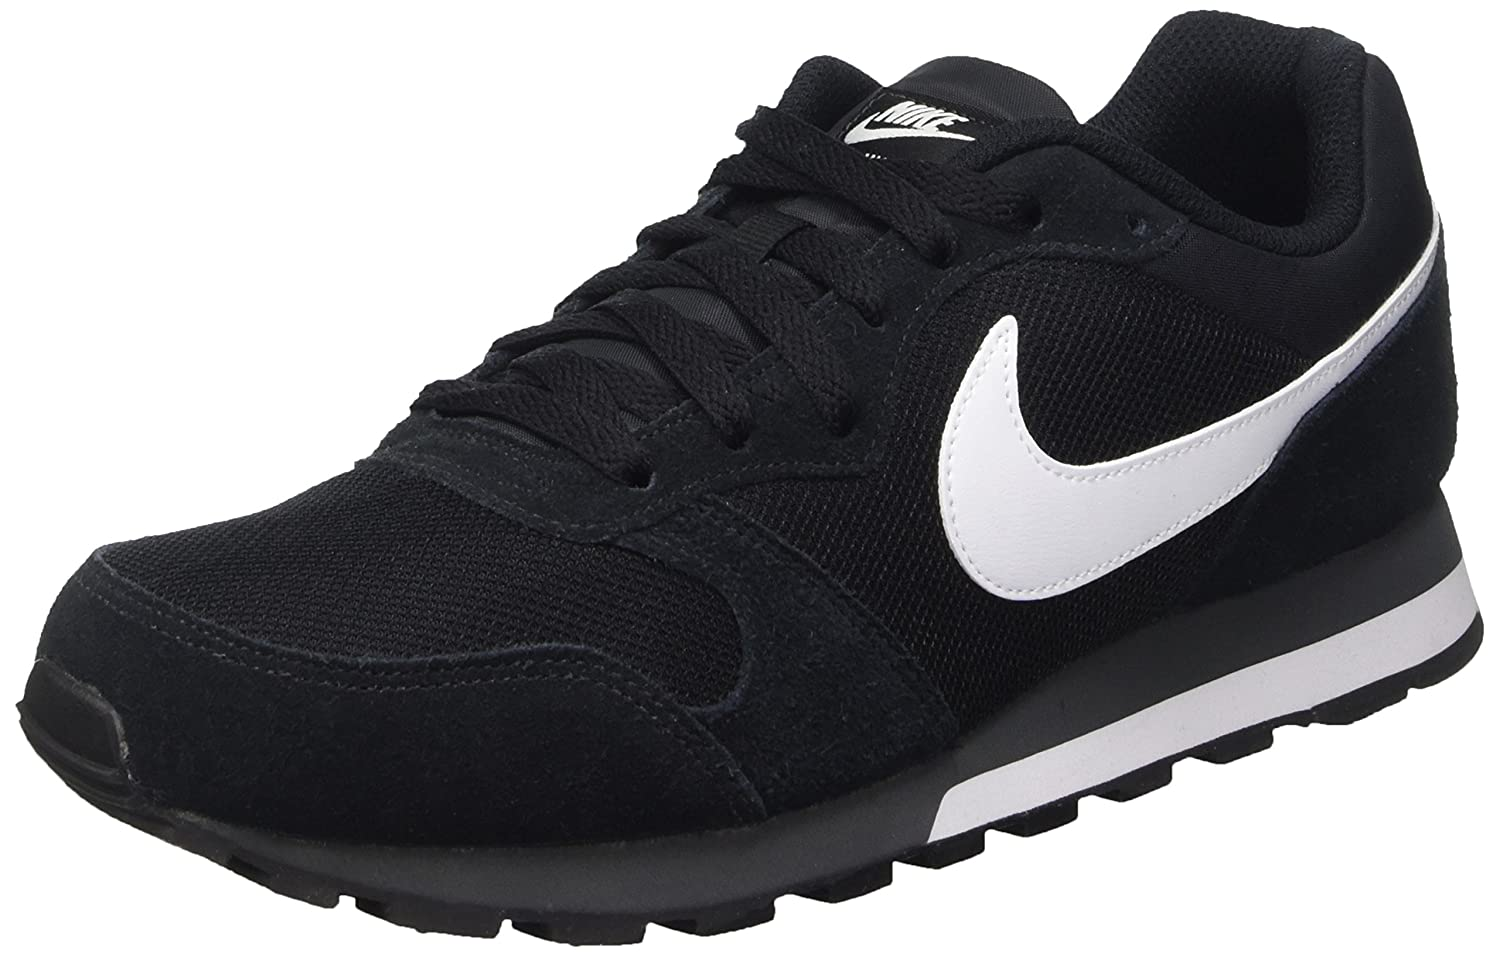 best sneakers d2a9a deca9 Amazon.com  Nike Womens Md Runner 2 Low-Top Sneakers  Road R